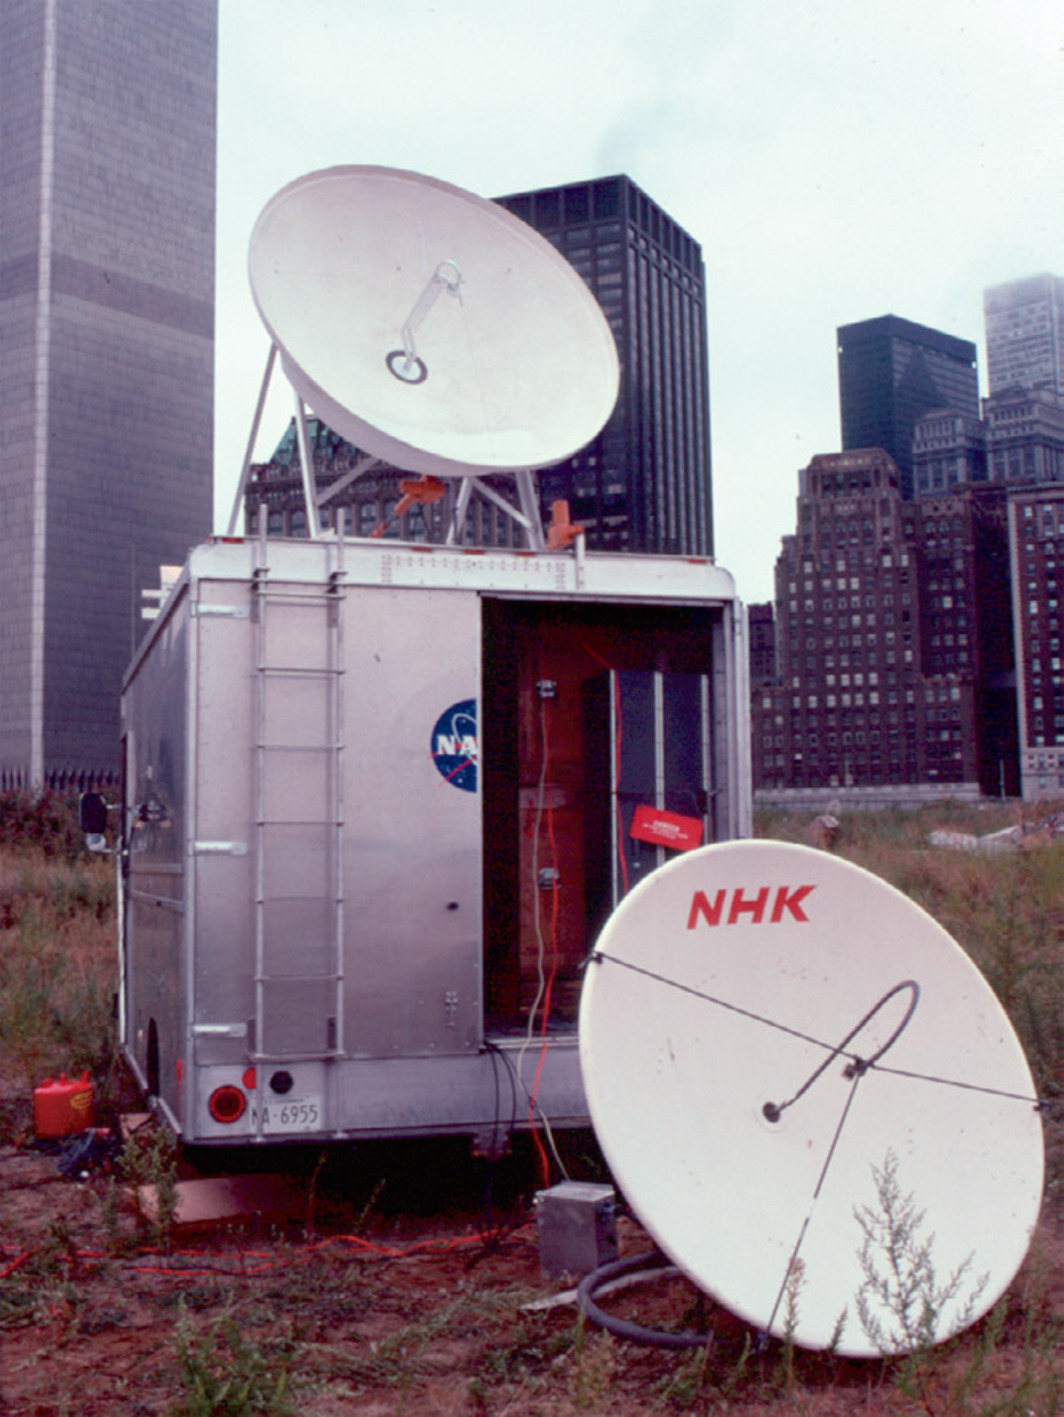 Keith Sonnier (coproduced with Liza Béar), Send/Receive Satellite Network, 1977, NASA truck. Installation view, Battery Park City, New York. Photo: Gwen Thomas.